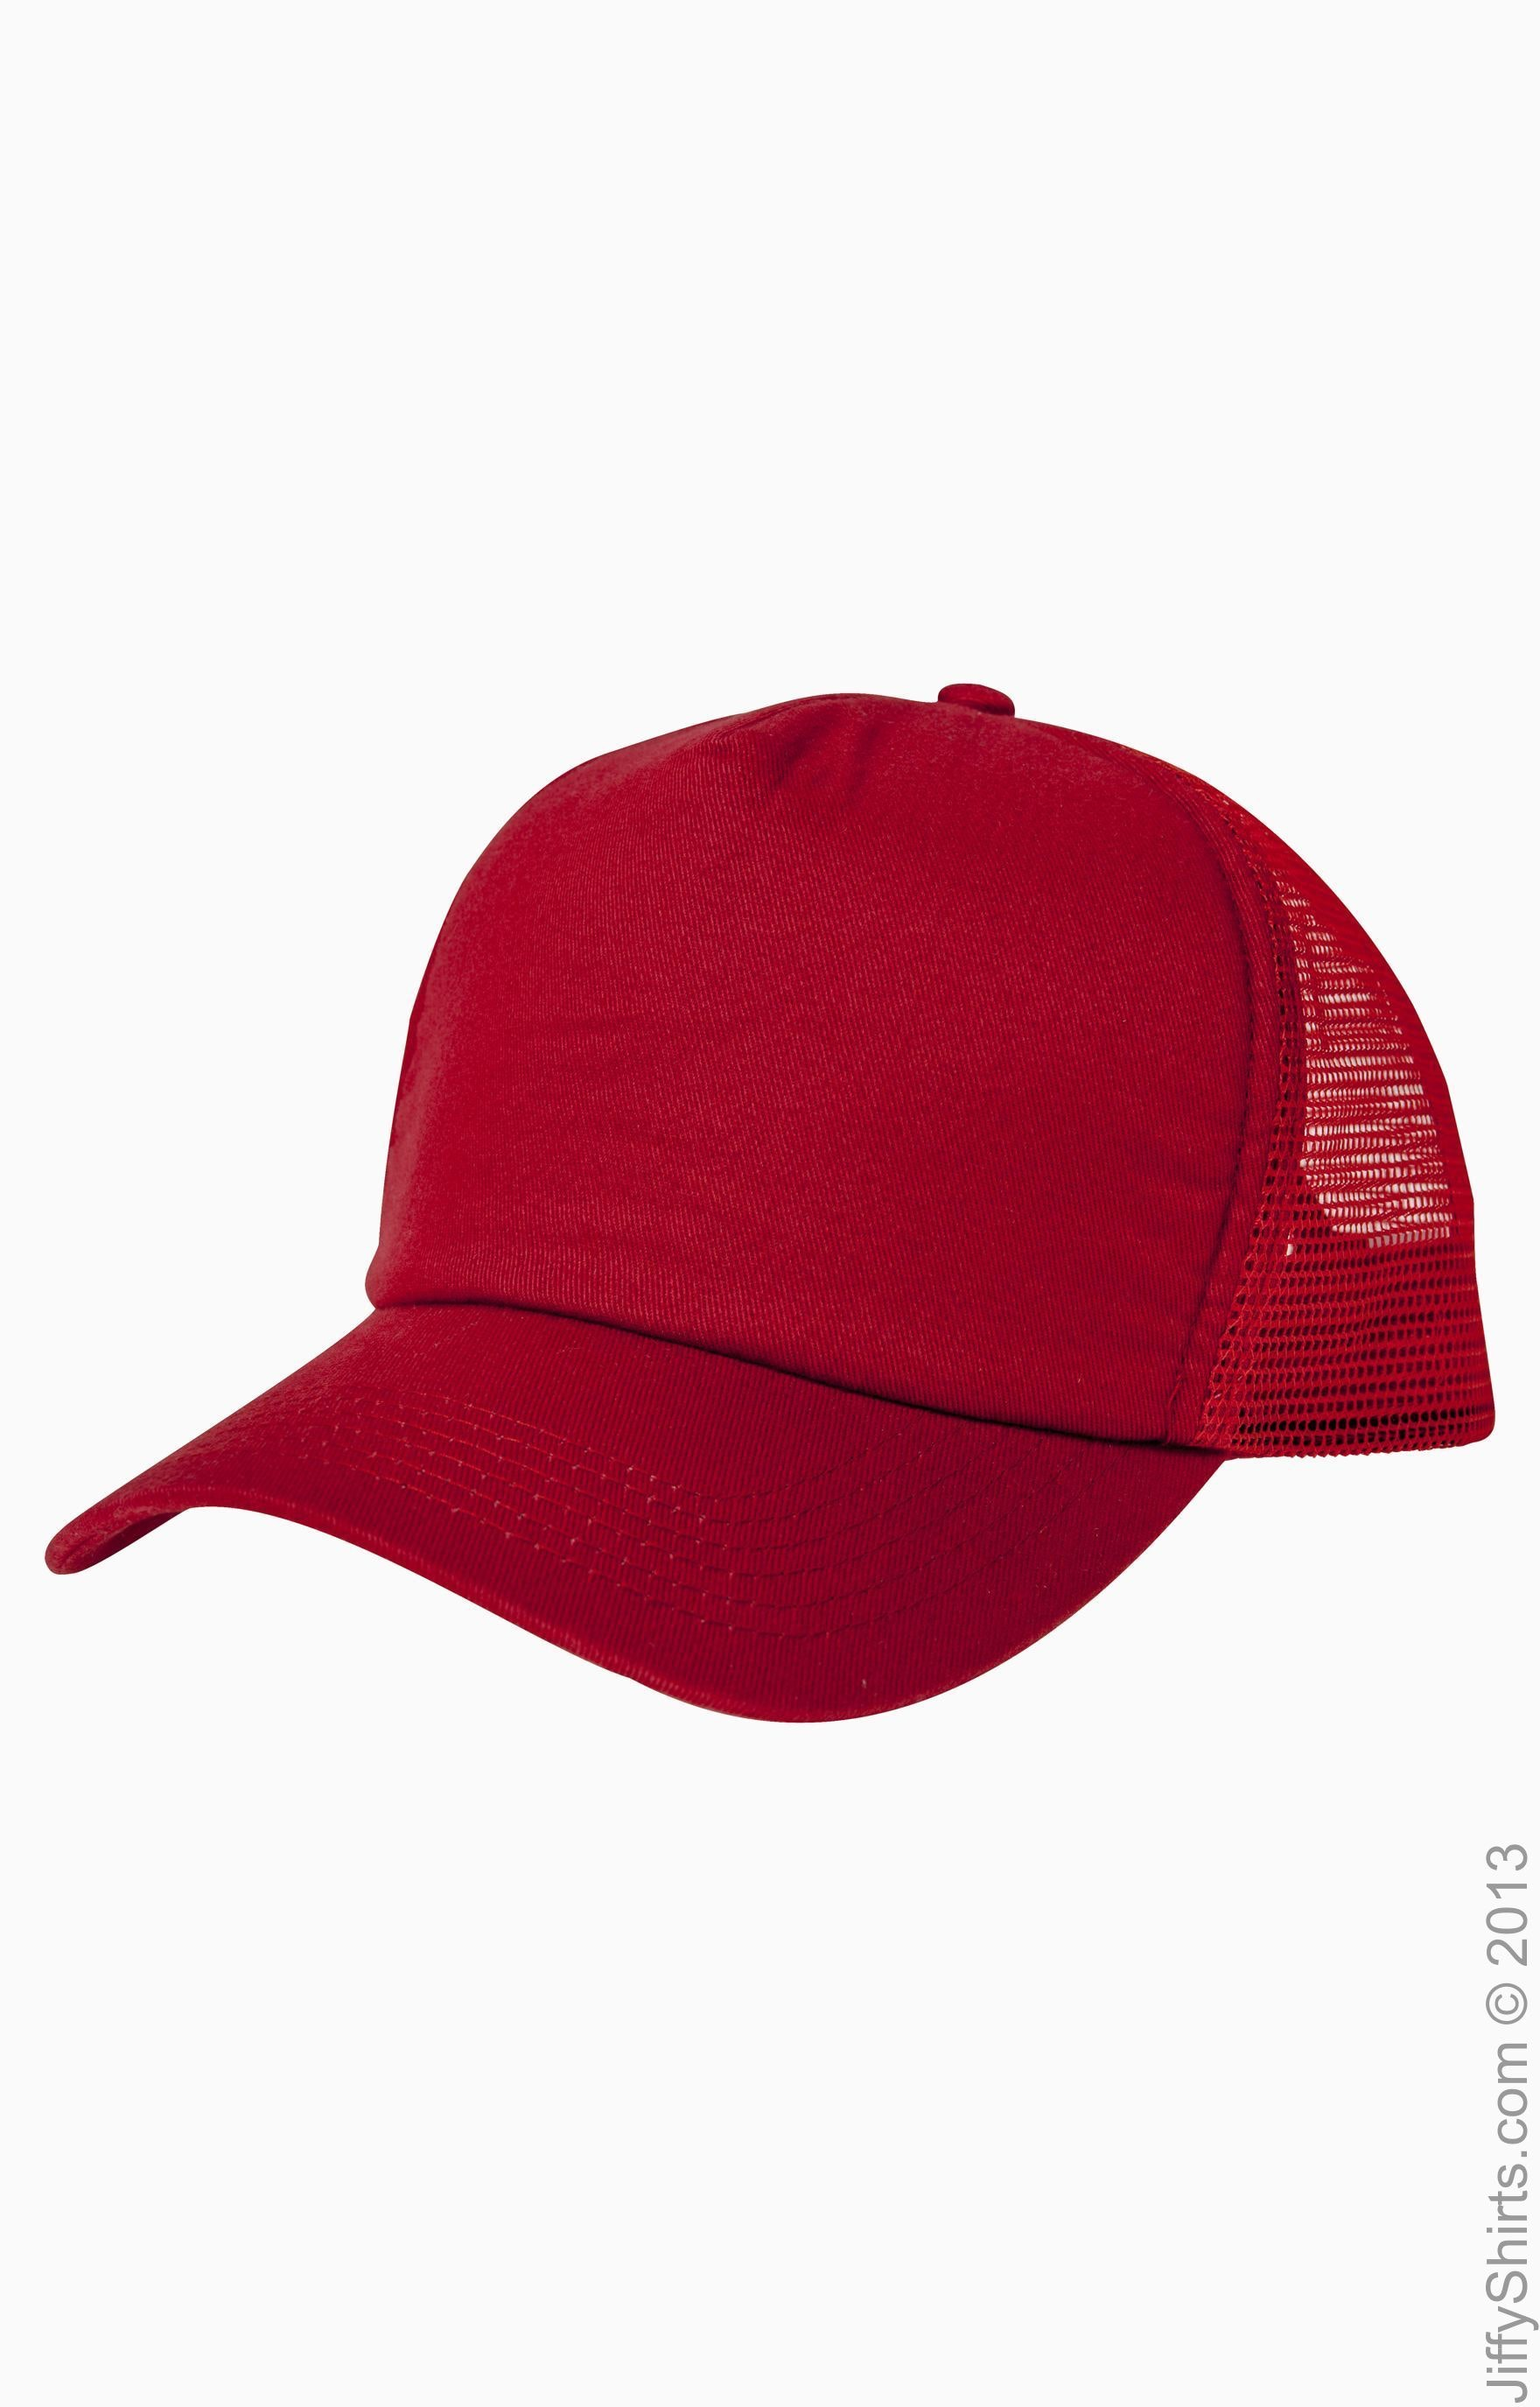 BX010 - Red